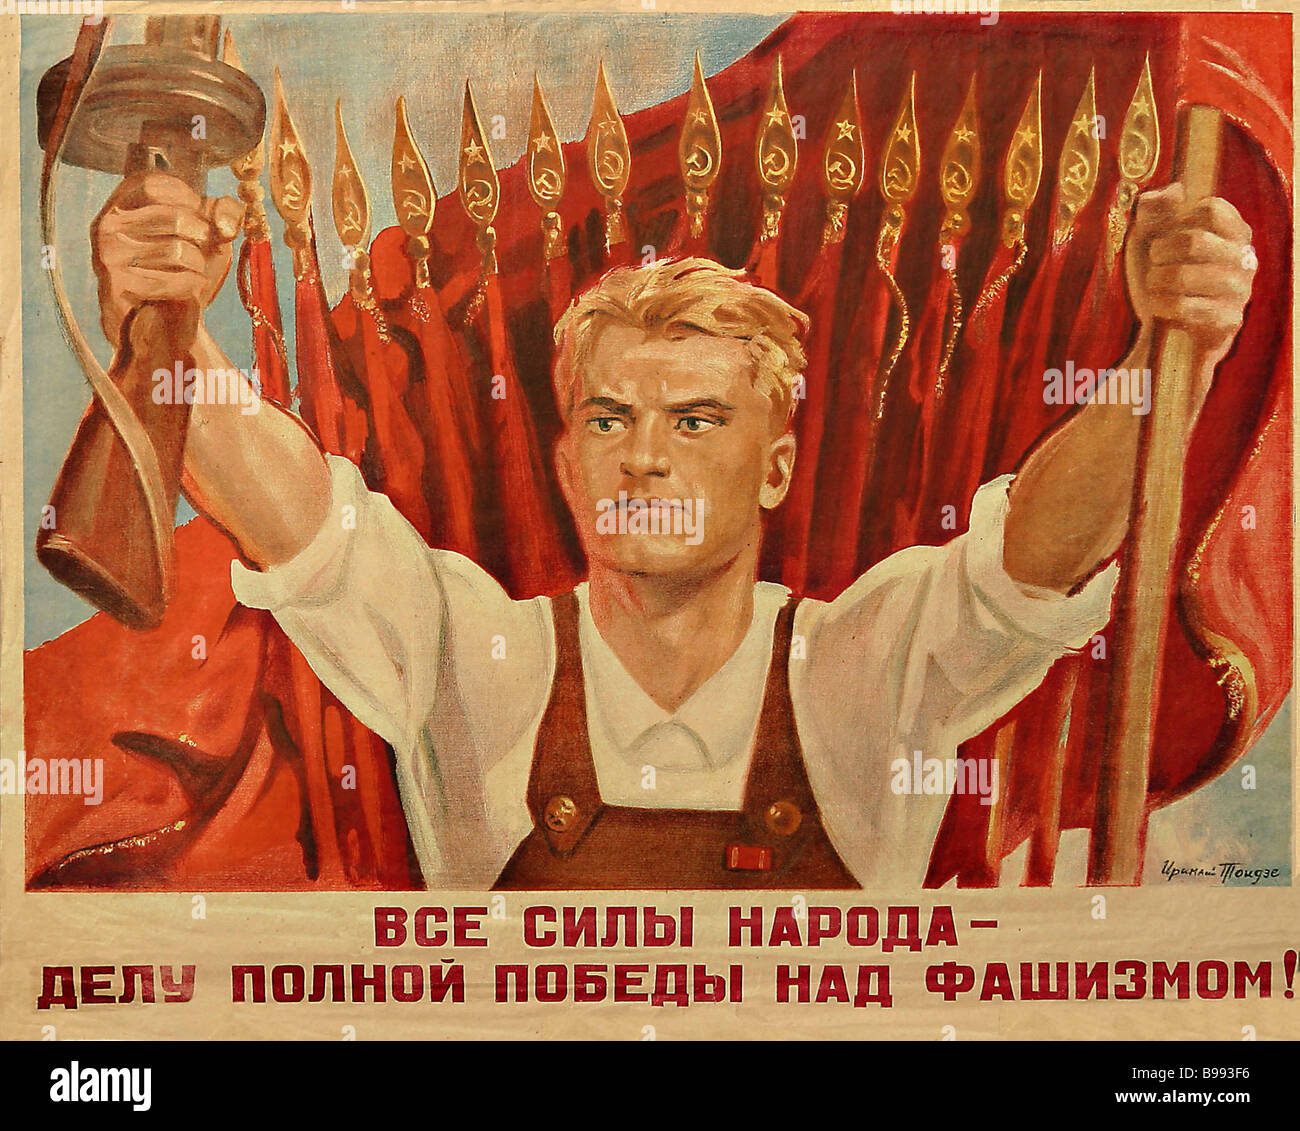 Irakly Toidze The nation s entire strength to the Victory cause Poster 1945 - Stock Image